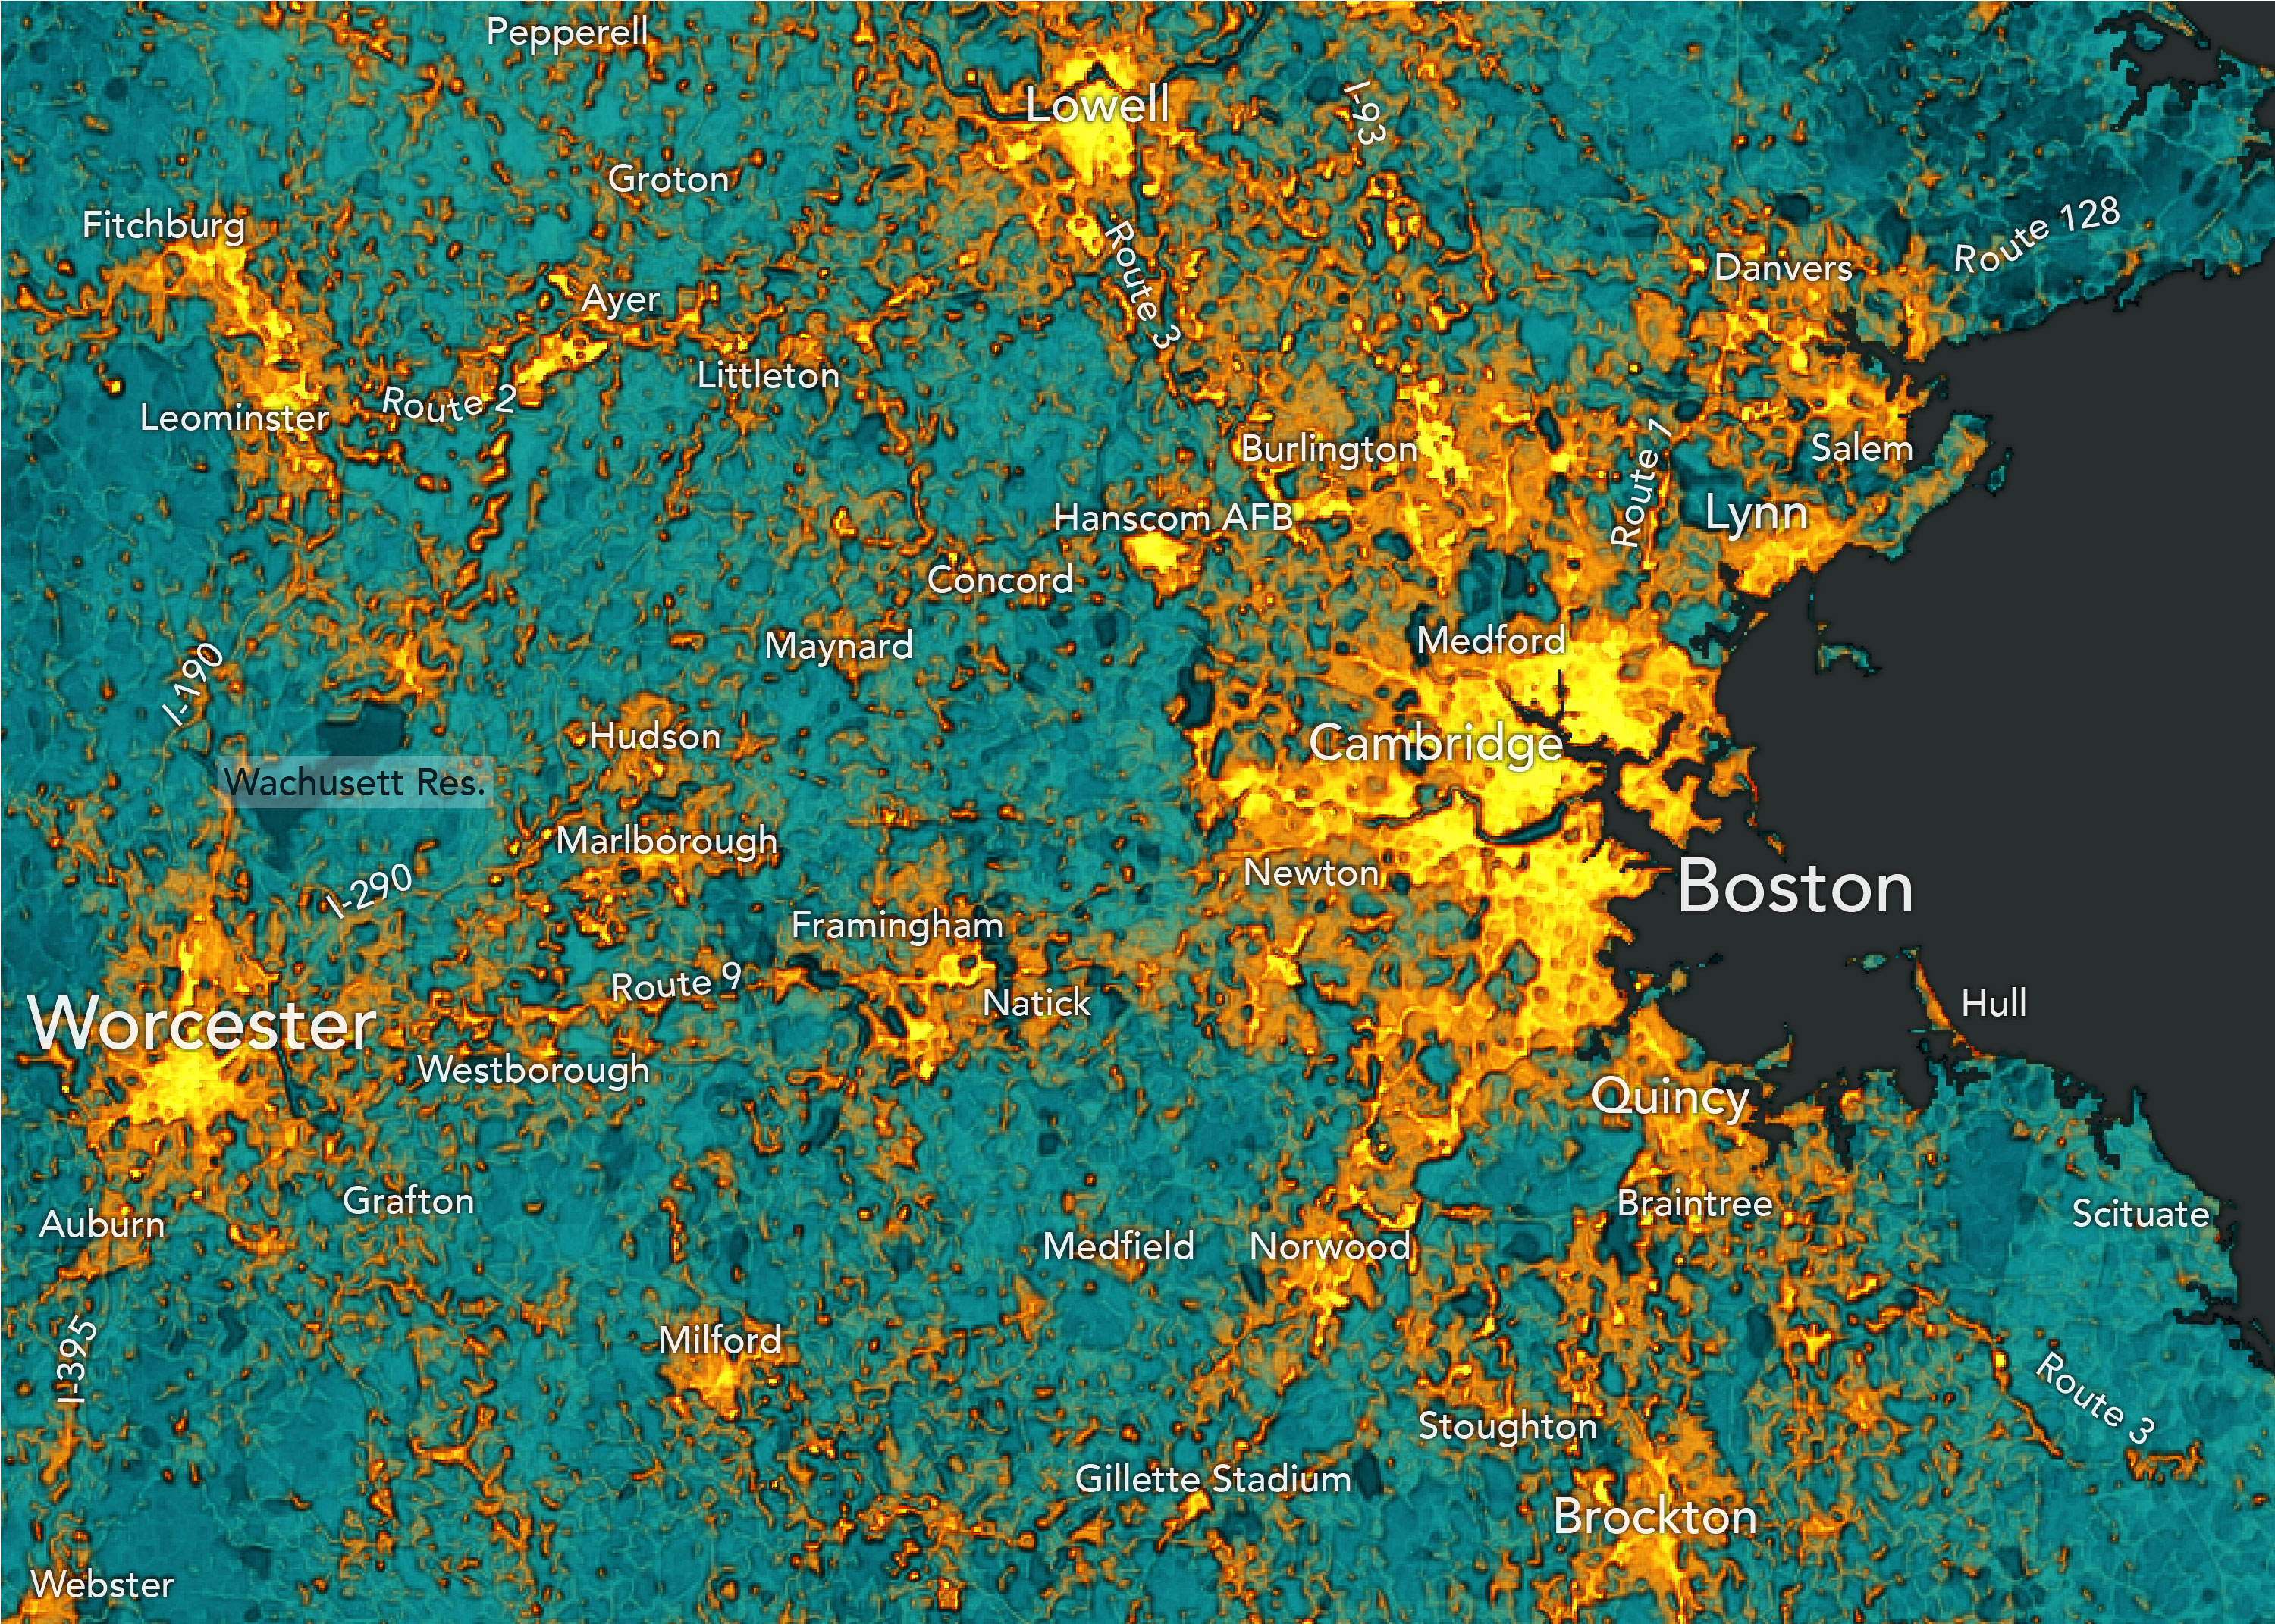 Bostonography Satellite Map Of Boston Neighborhoods on satellite view of a vietnam, aerial view of neighborhoods, atlanta neighborhoods, map of seattle neighborhoods, satellite view of address zoom, satellite view of neighborhood,